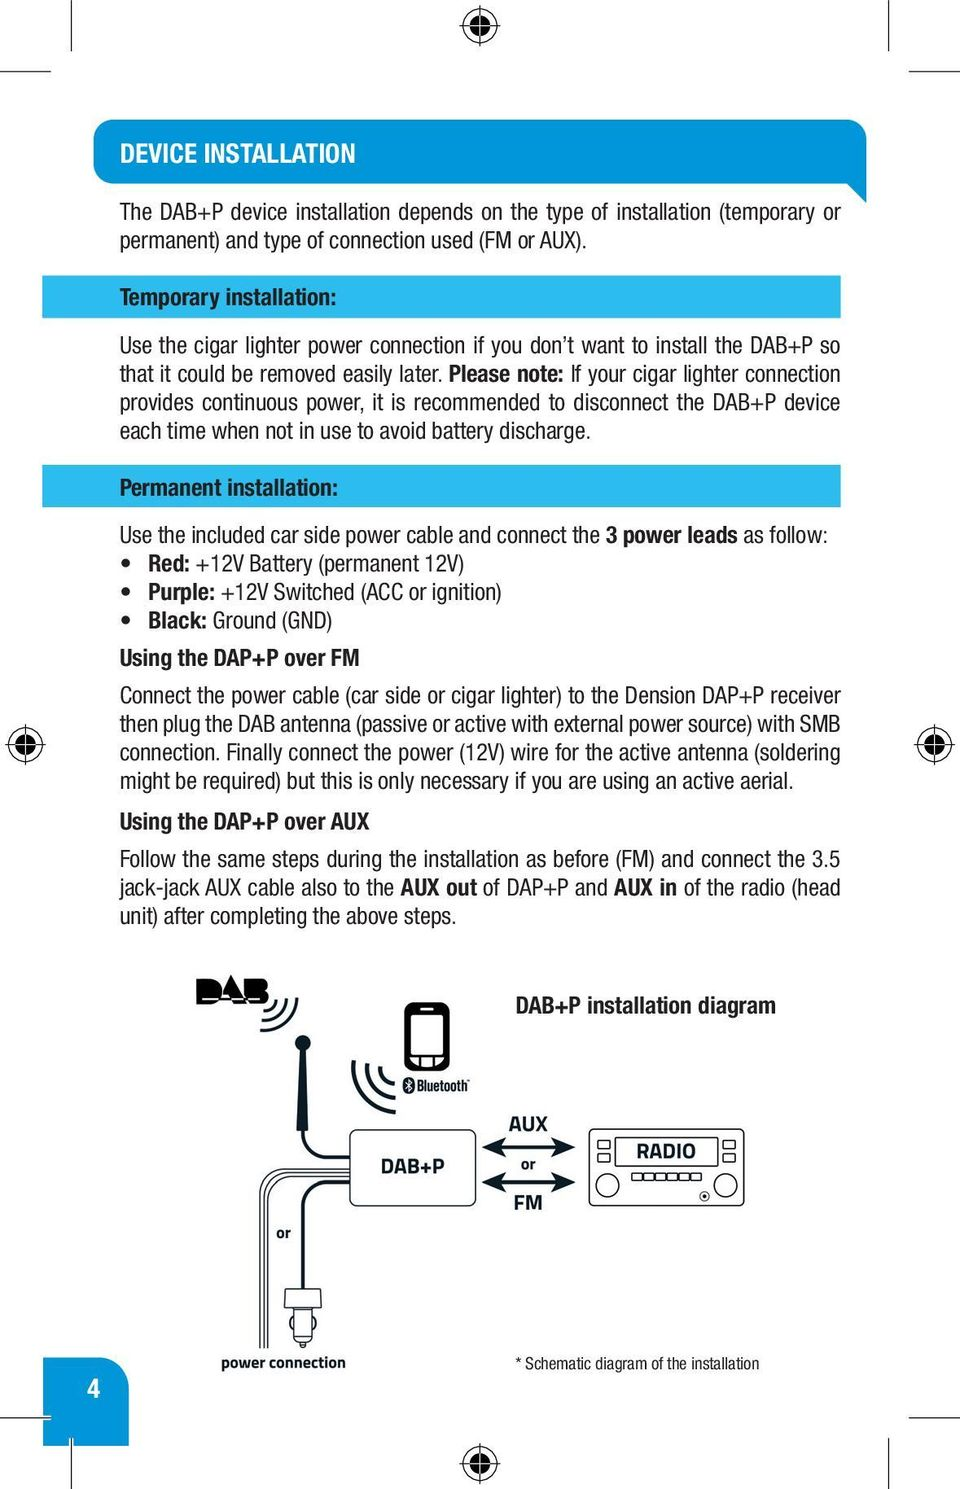 Dab P Smart Radio Receiver Quick Start Guide Pdf Aux Cable Schematic Please Note If Your Cigar Lighter Connection Provides Continuous Power It Is Recommended To